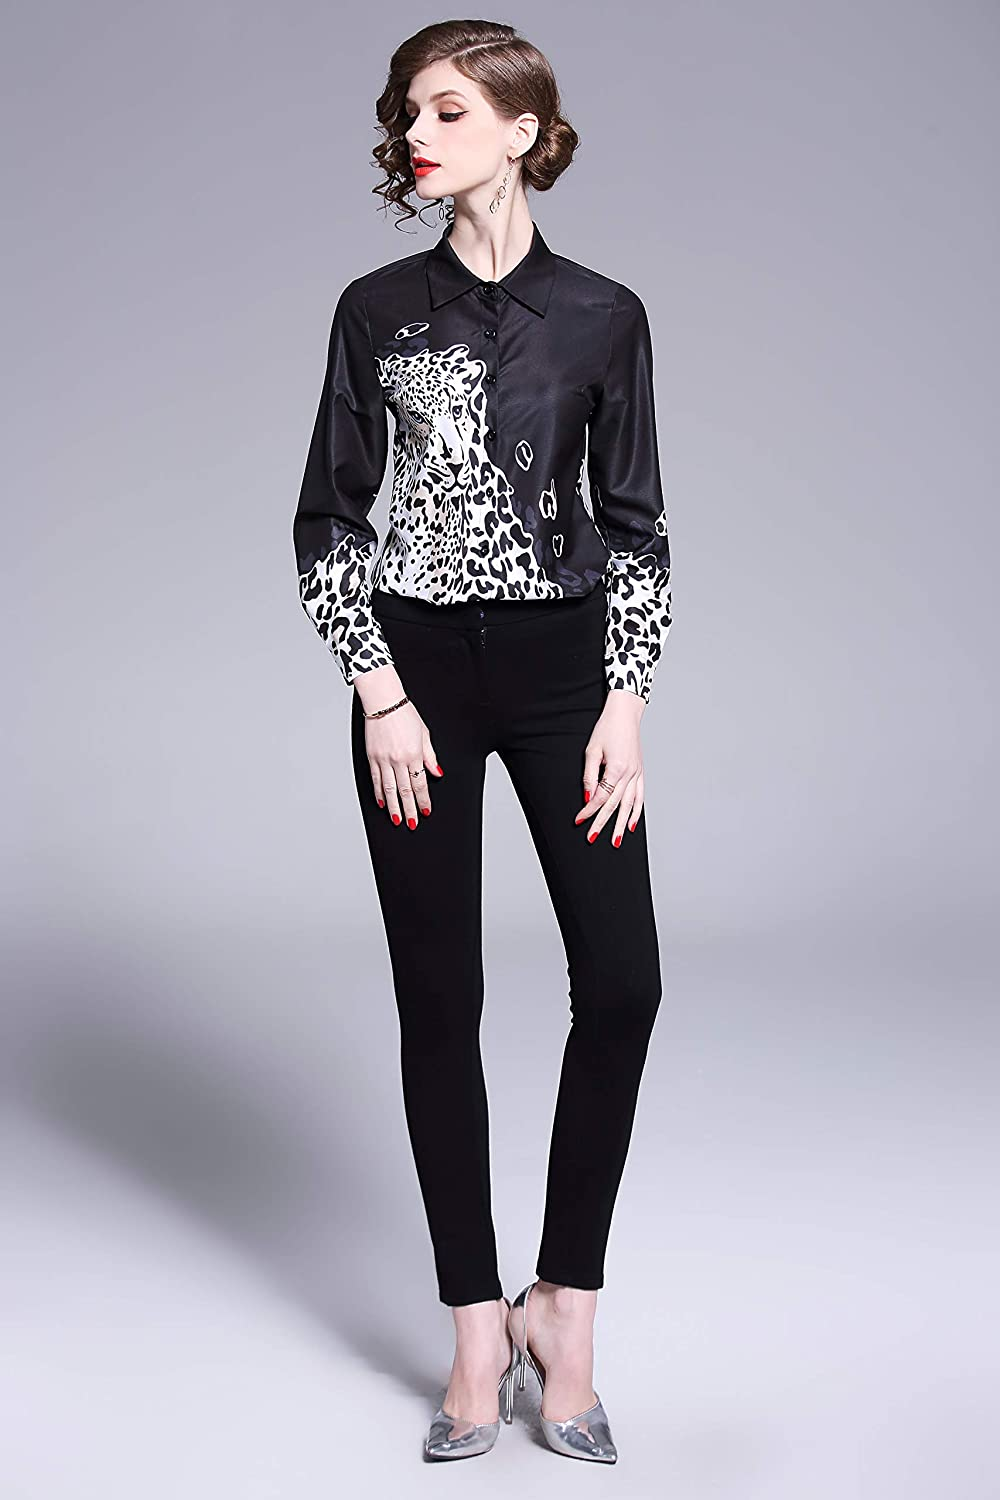 Women's Collared Animal Print Shirt Long Sleeve Button up Casual Blouse Top